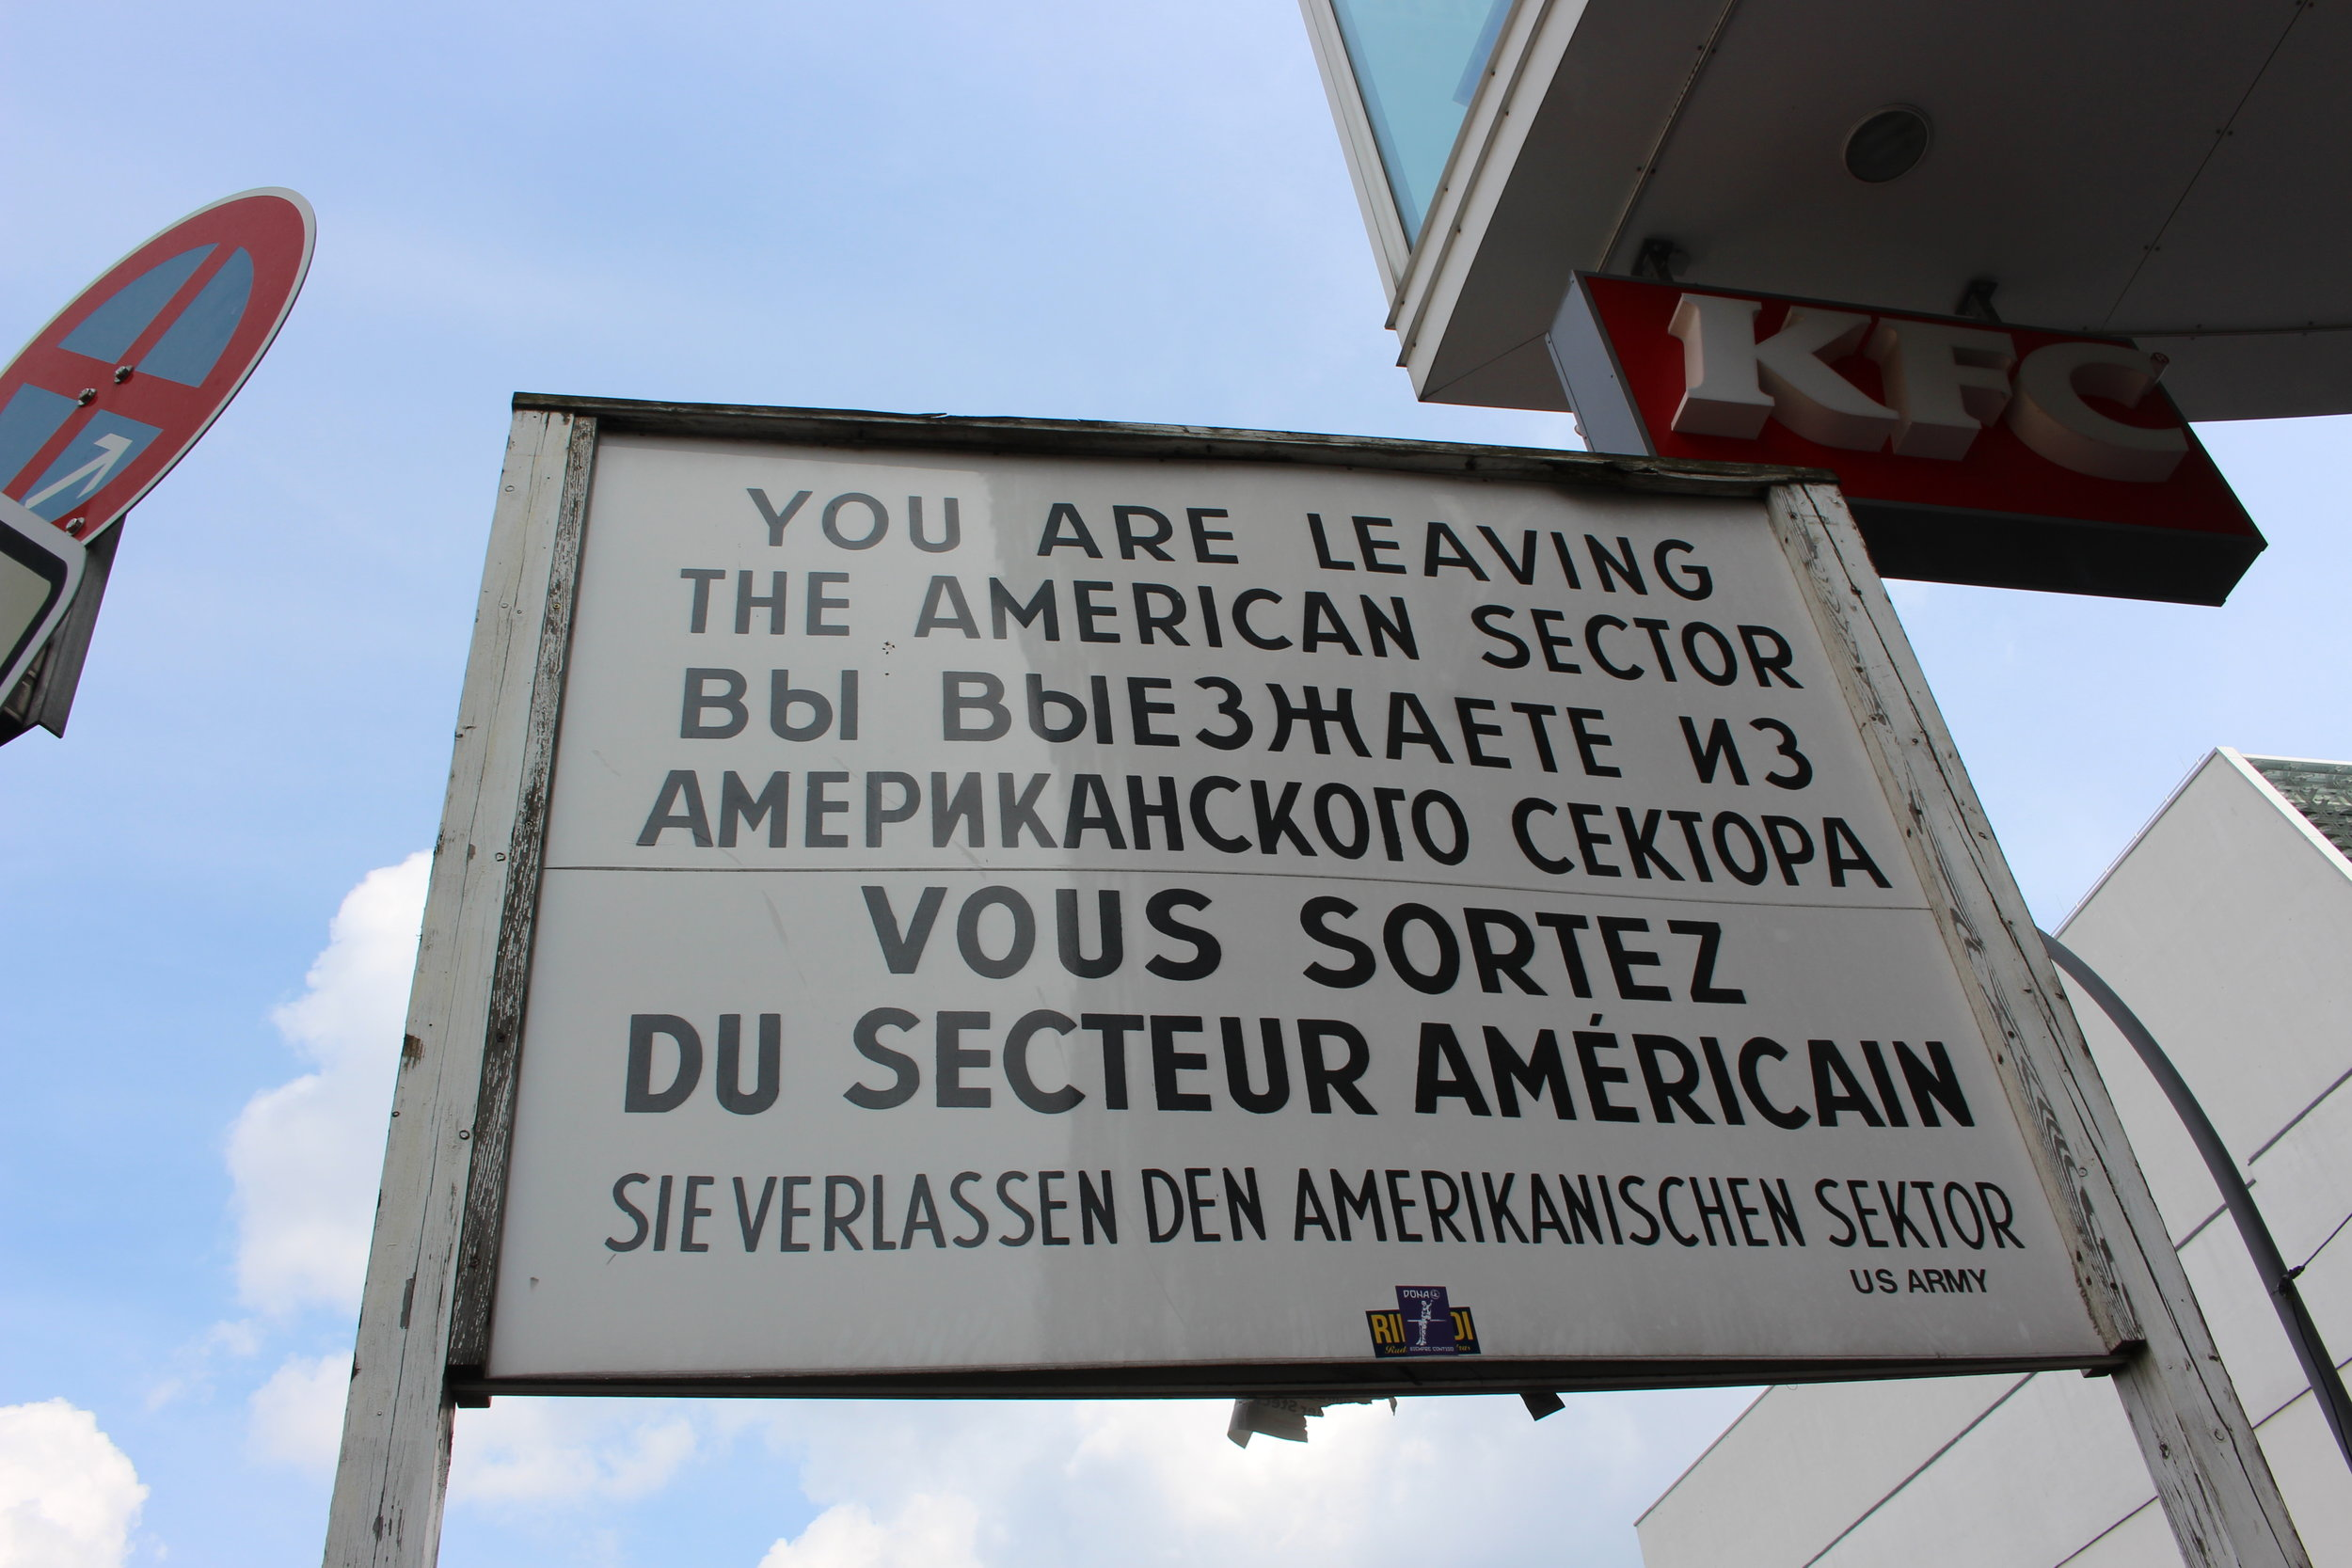 This is the sign that appeared at the crossing between East and West Berlin. The varied language shows the mixture of culture of the people who resided on each side of the wall.